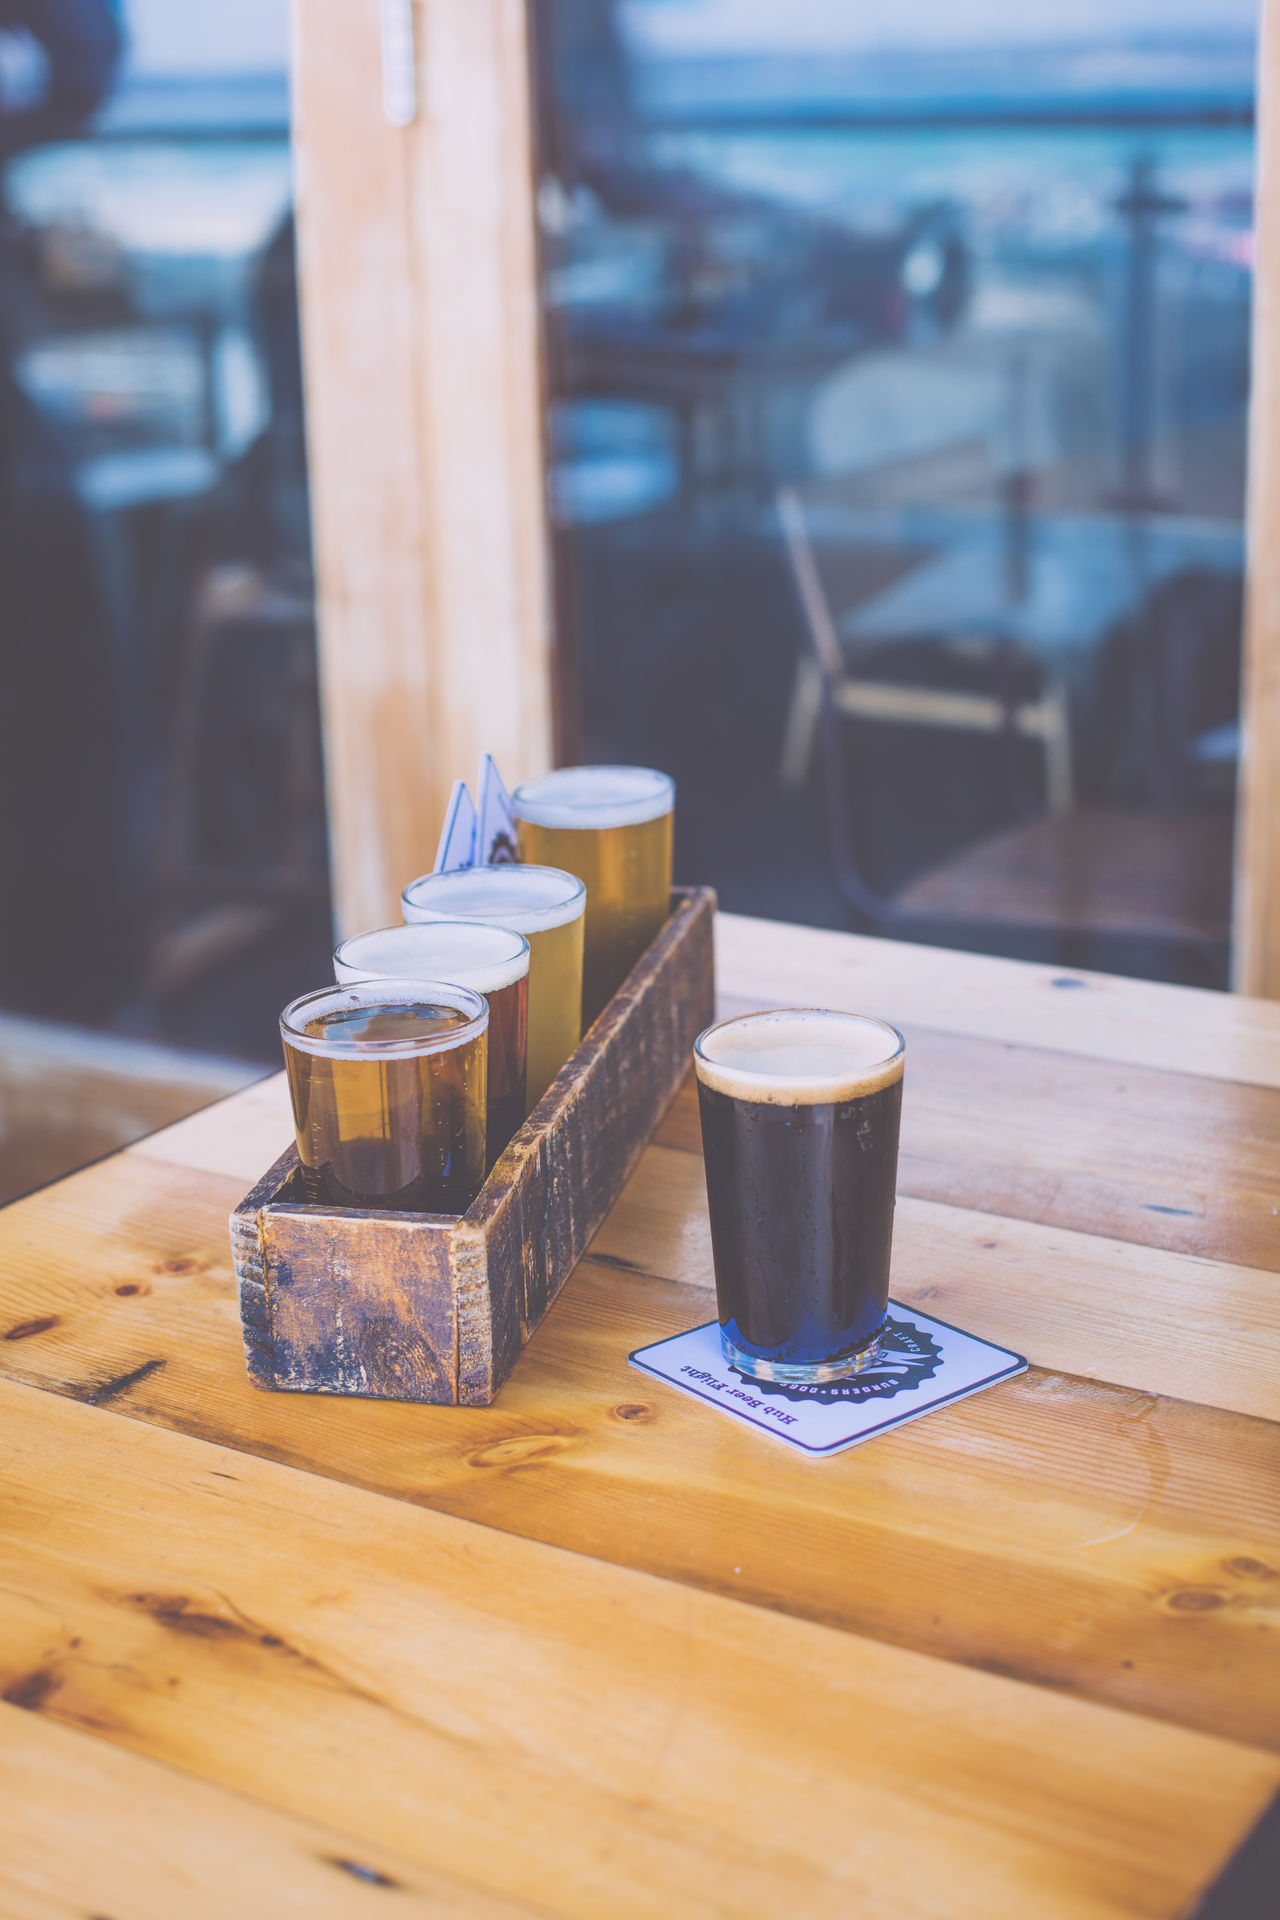 Alcohol Ale Beer Beer Flight Beer Flights Beer Tasting  Beer Time Beers Coffee - Drink Coffee Cup Drink Drinks Focus On Foreground Food And Drink Freshness Glass IPA No People Refreshment Still Life Stout Table